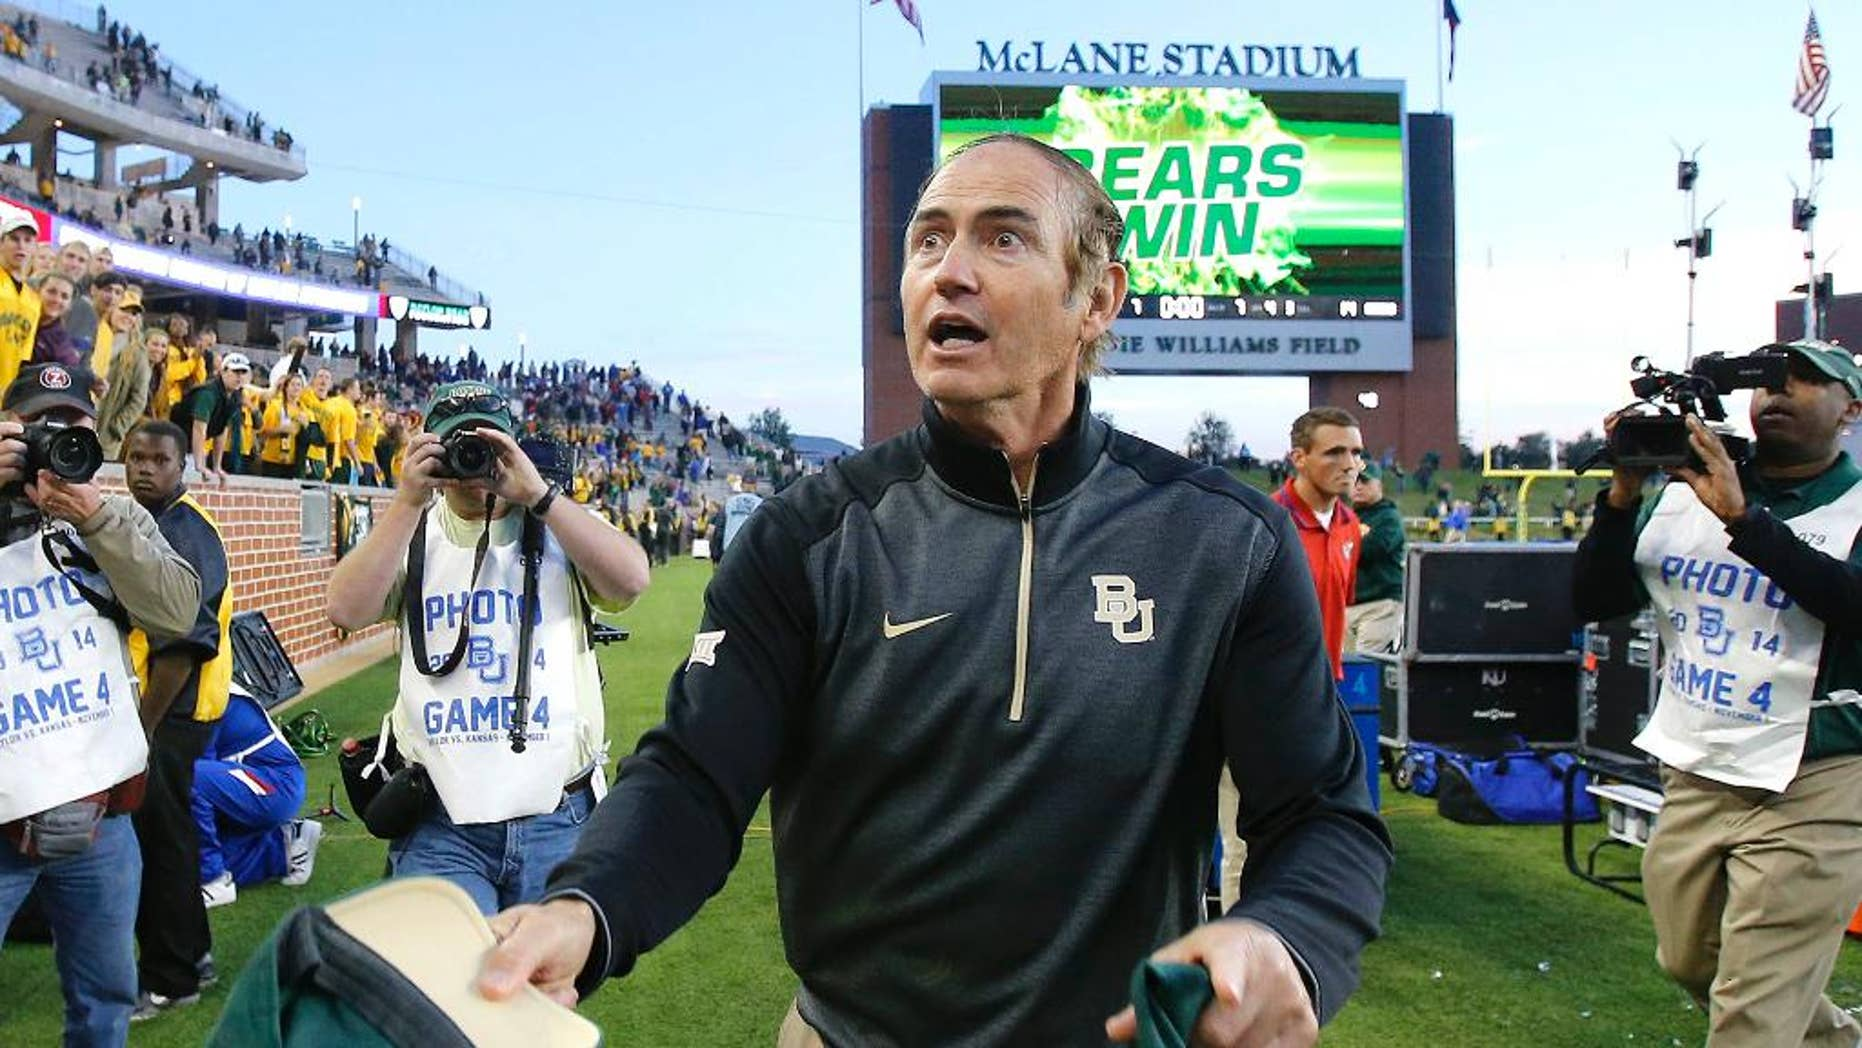 Baylor head coach Art Briles head toward the student section to toss them a autographed game winning cap after defeating Kansas 60-14 in a NCAA college football game, Saturday, Nov. 1, 2014, in Waco, Texas. (AP Photo/ Jerry Larson)